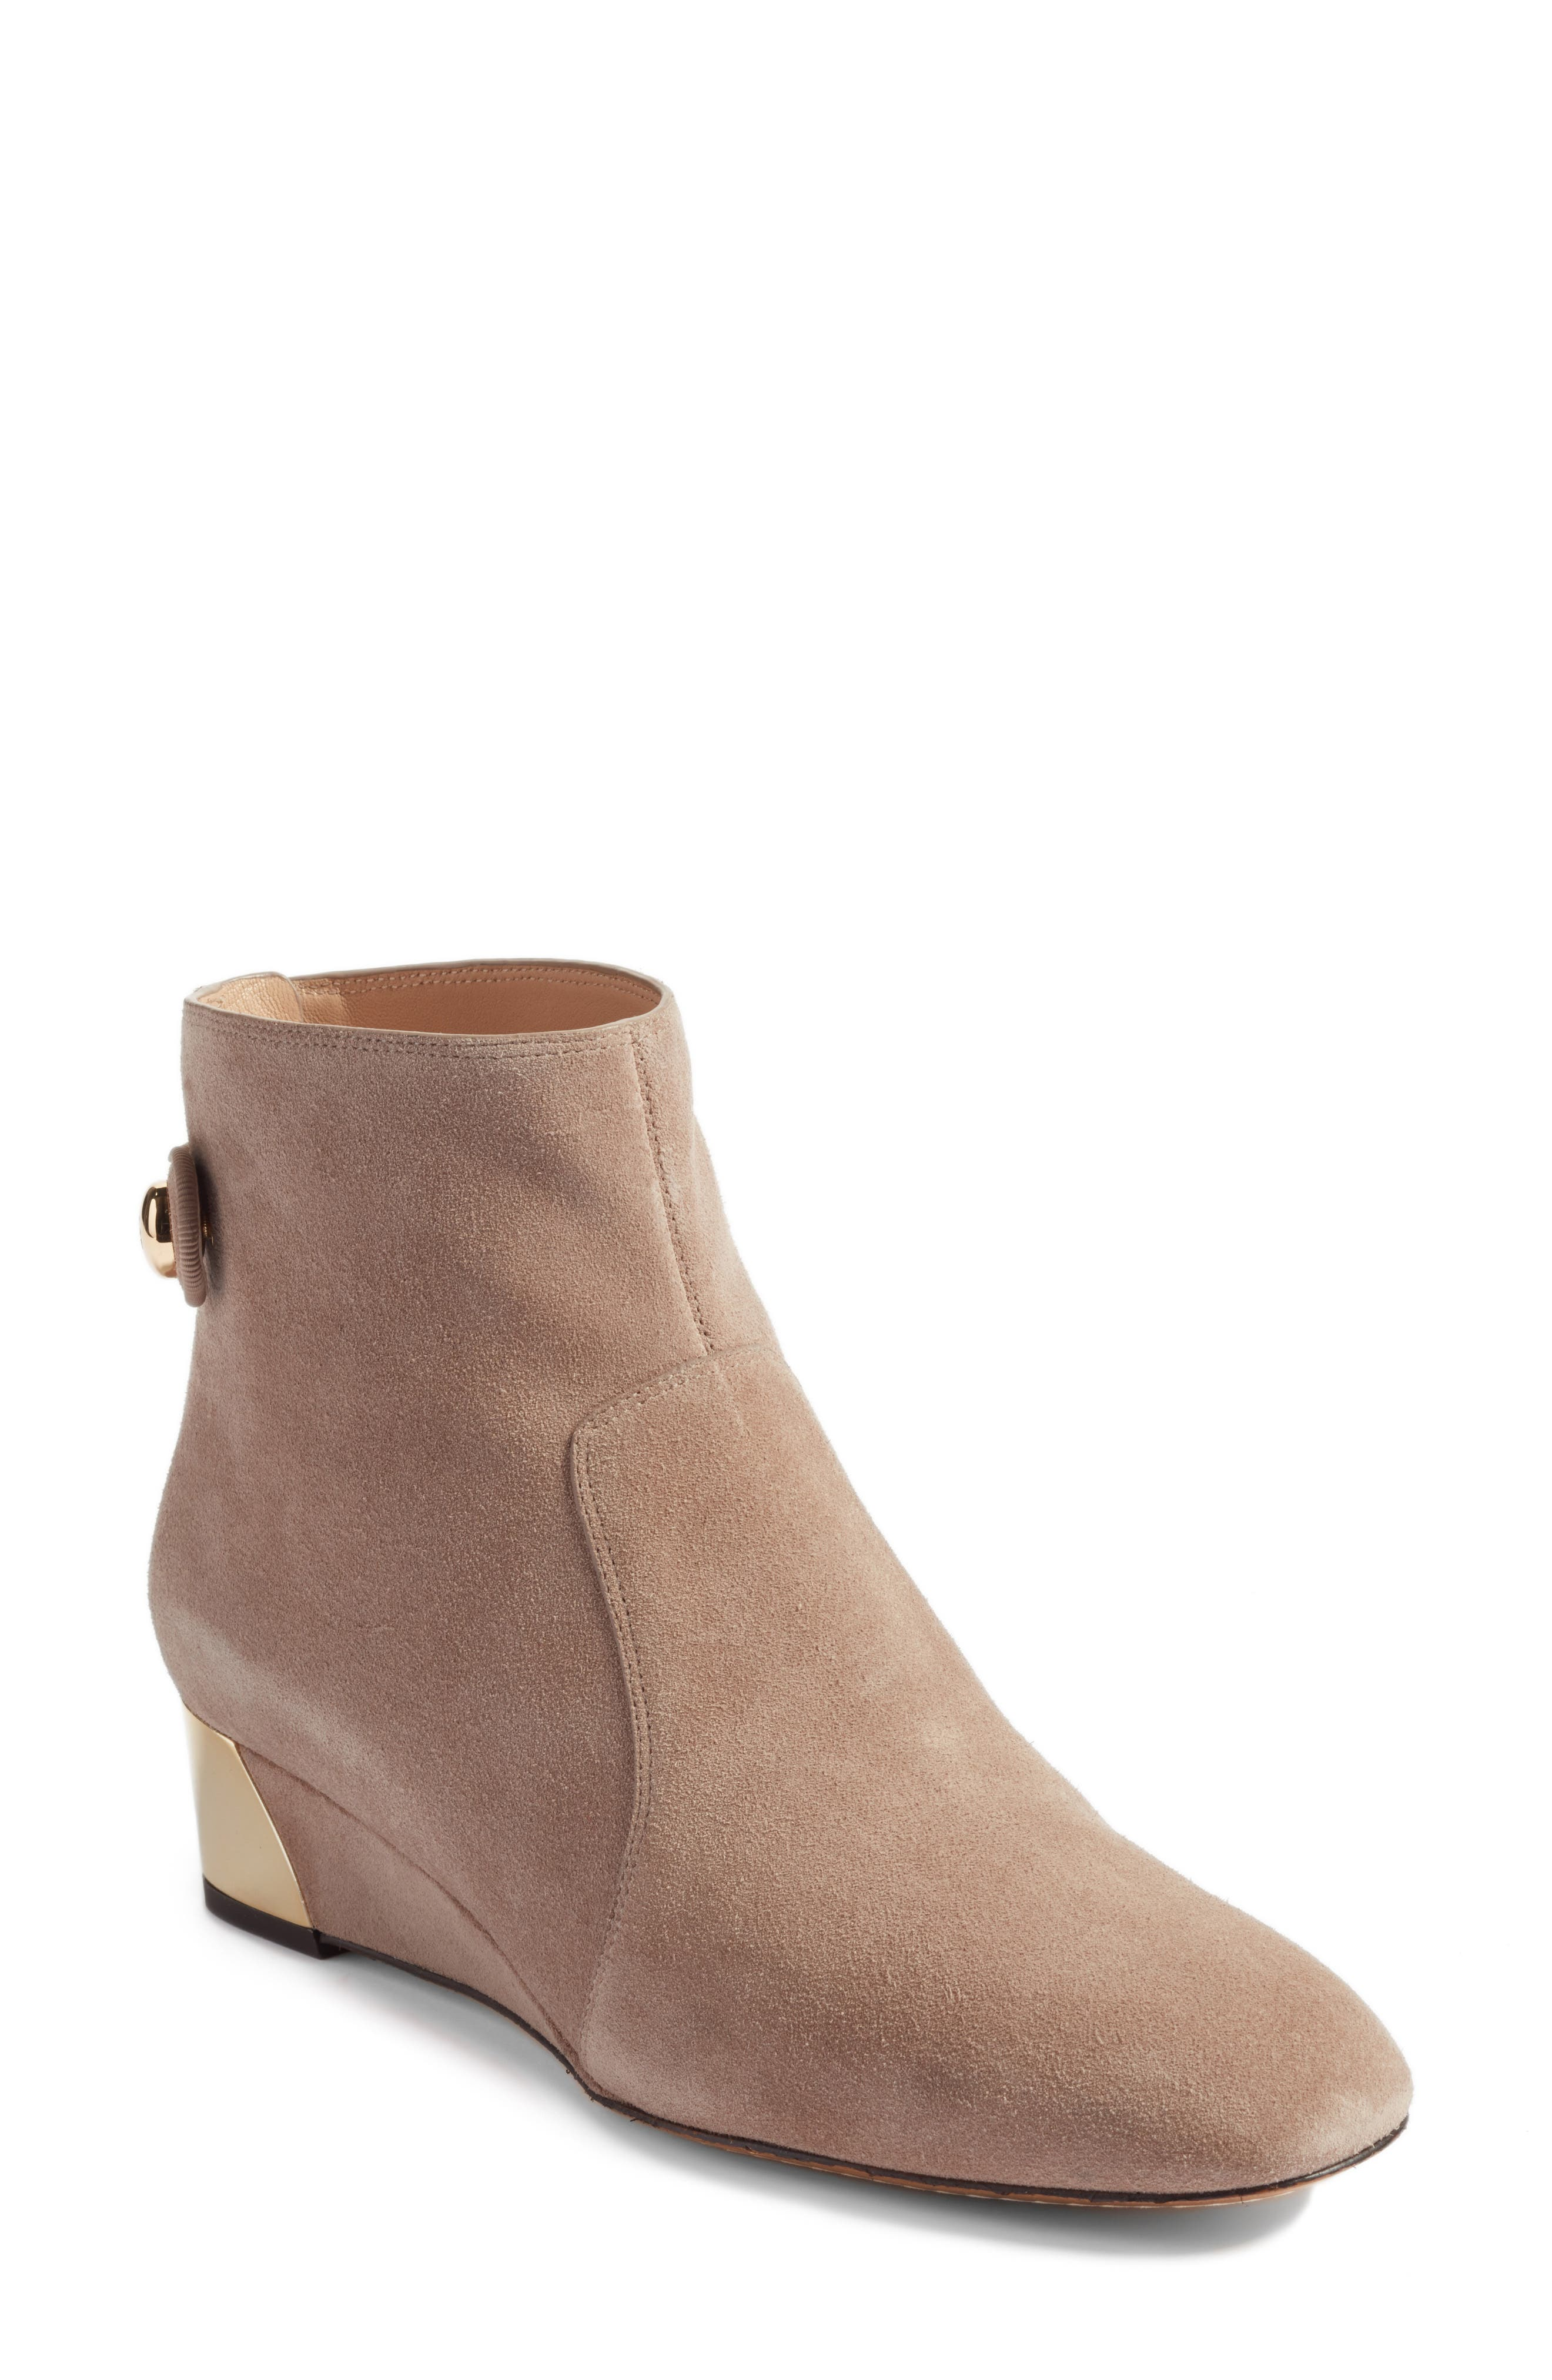 TORY BURCH Marisa Wedge Bootie